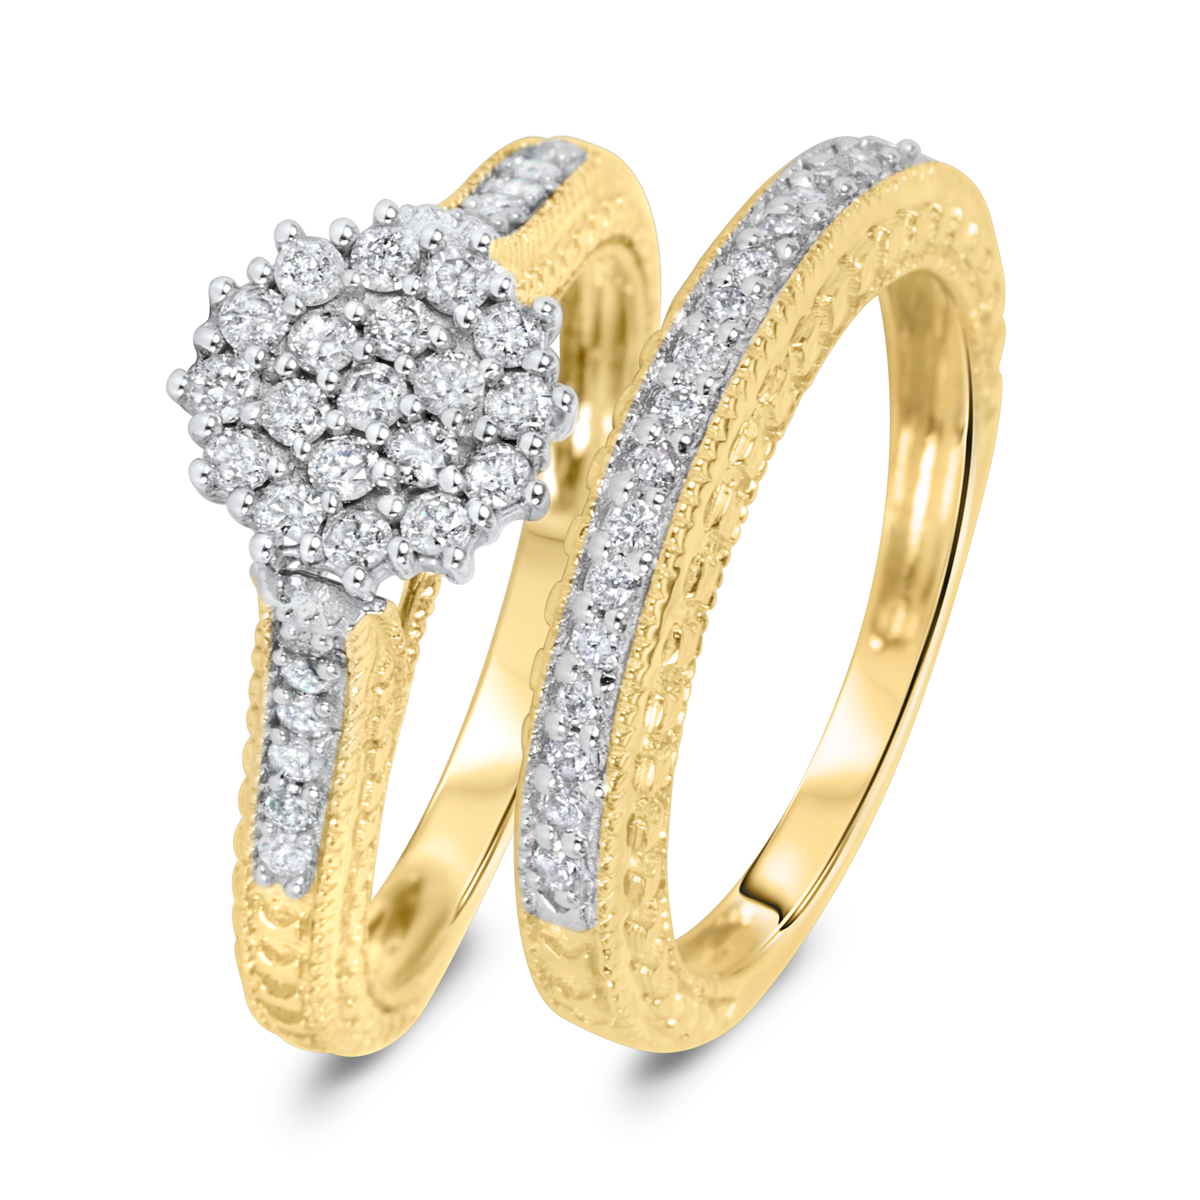 engagement rings wedding rings under Starburst Collection 18ct gold 0 50 carat round brilliant diamond ring